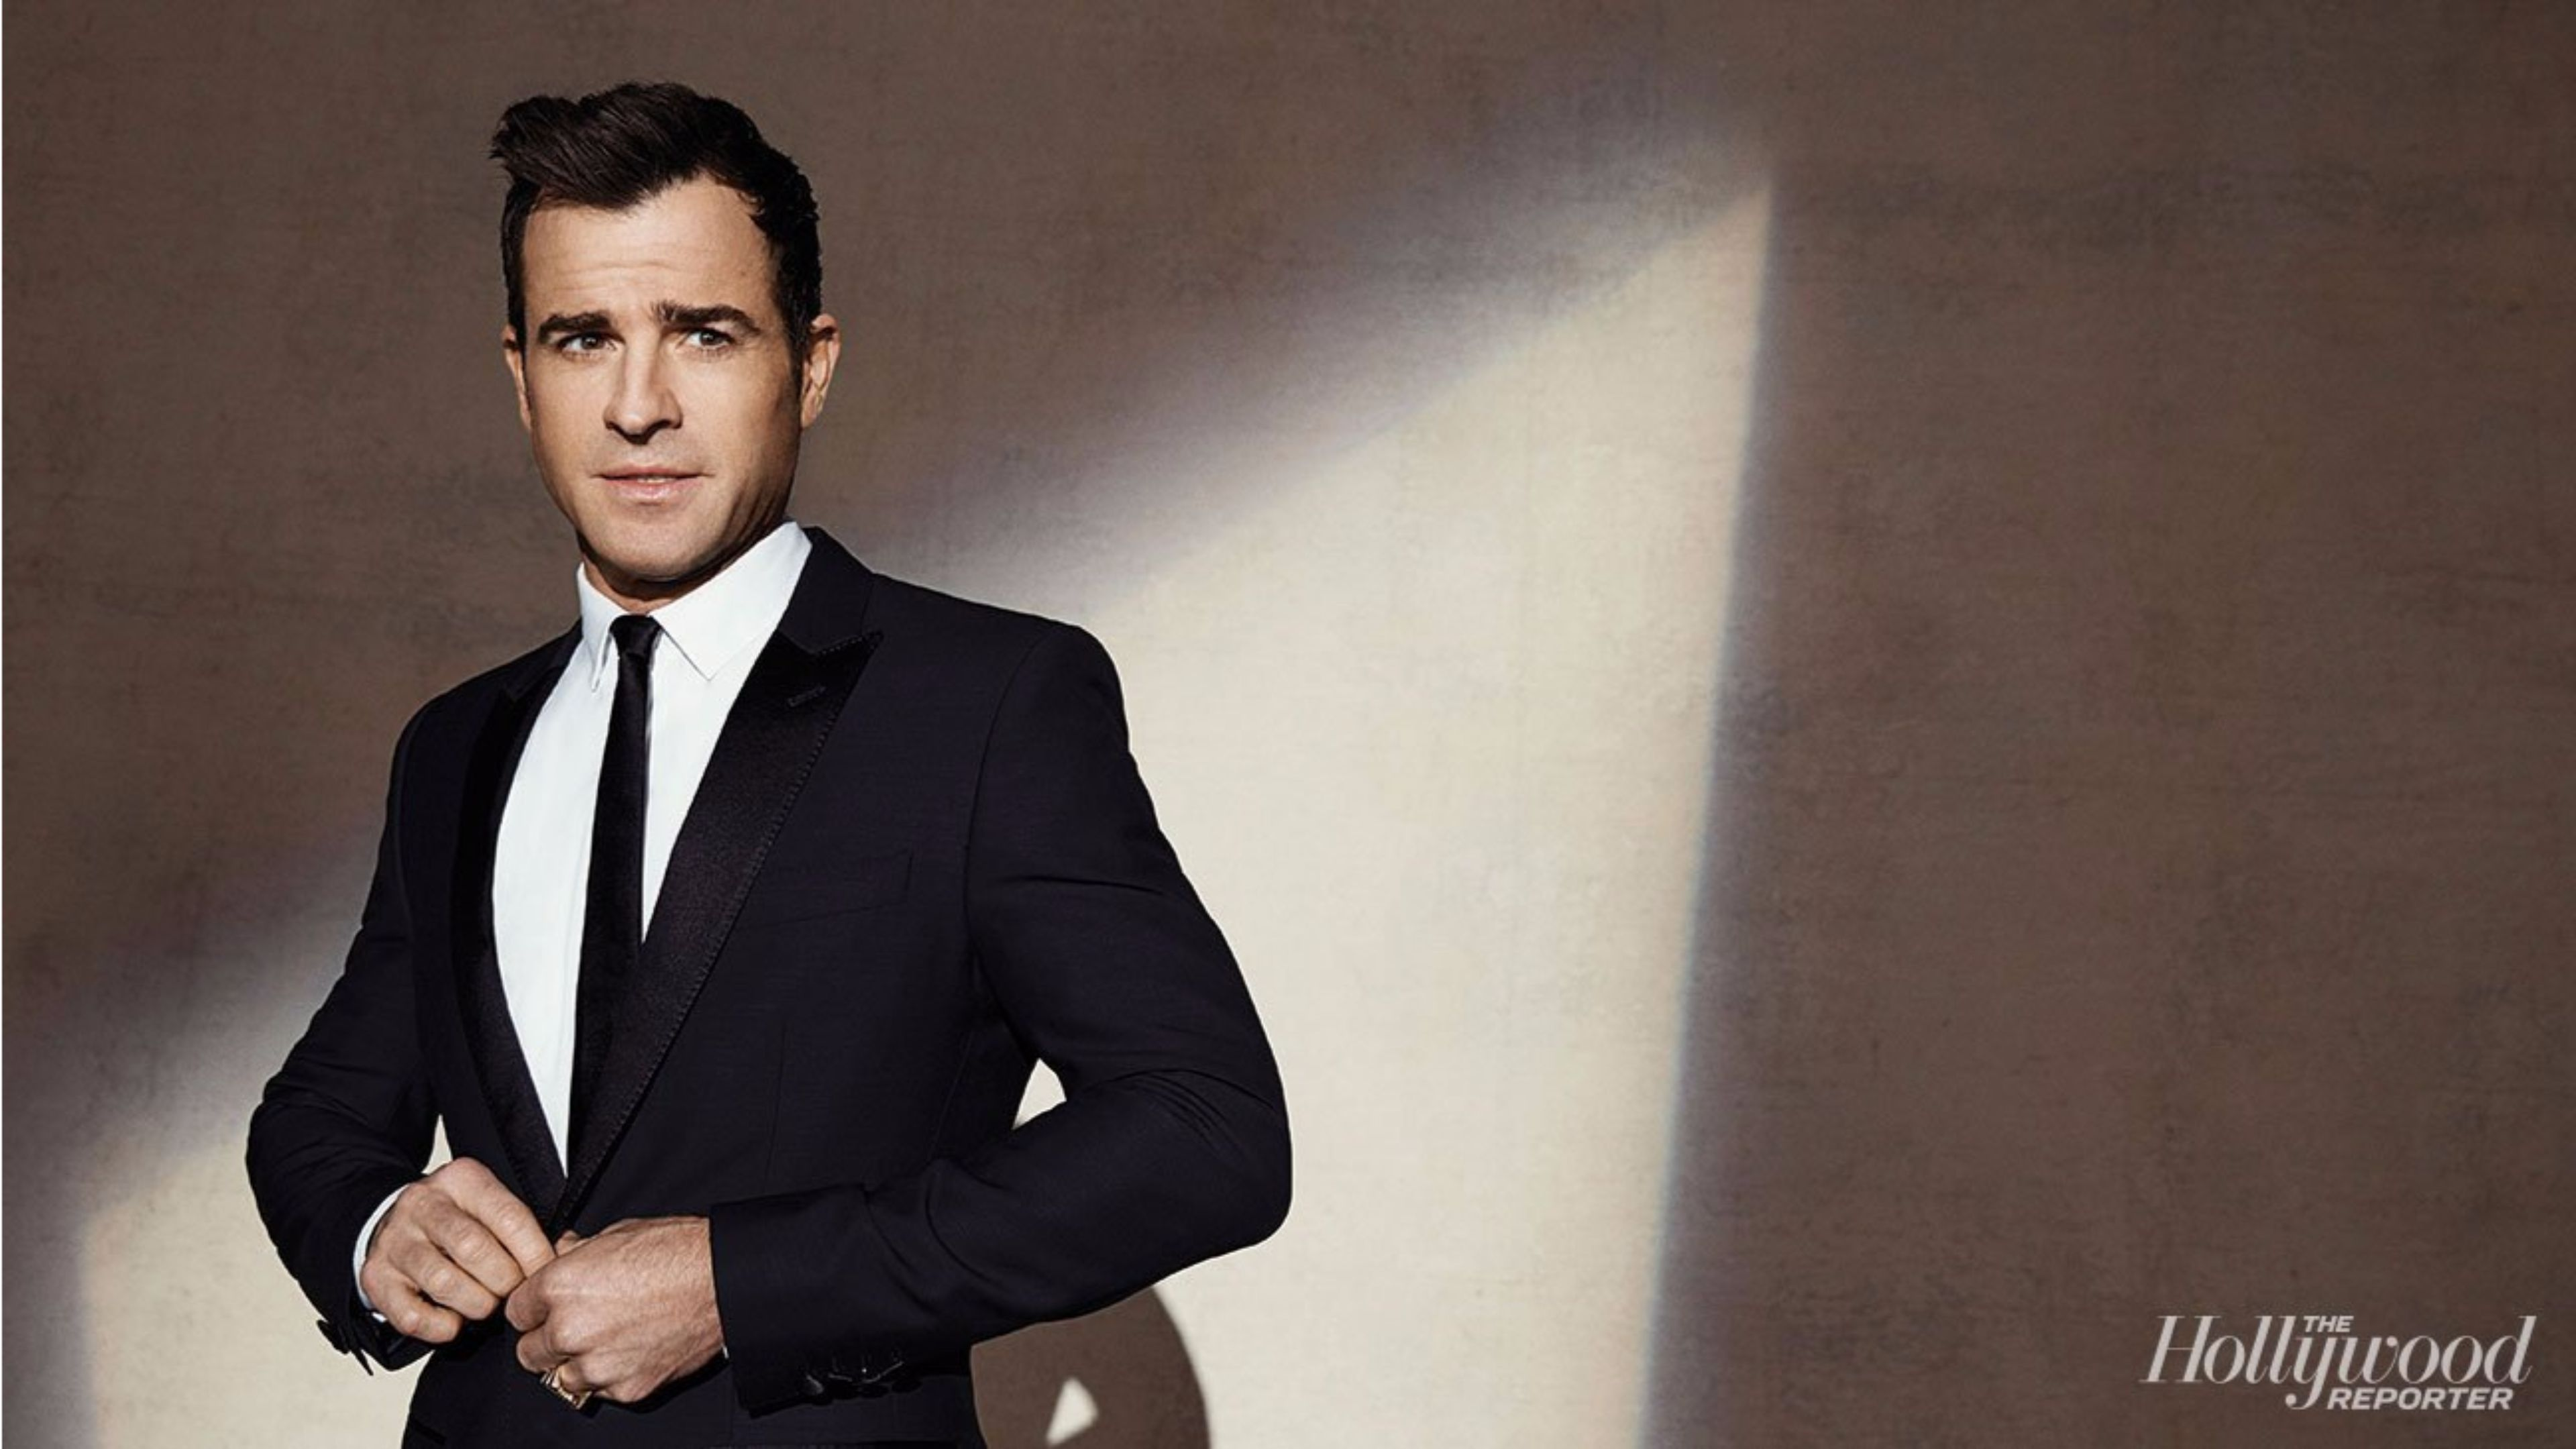 3840x2160 - Justin Theroux Wallpapers 1